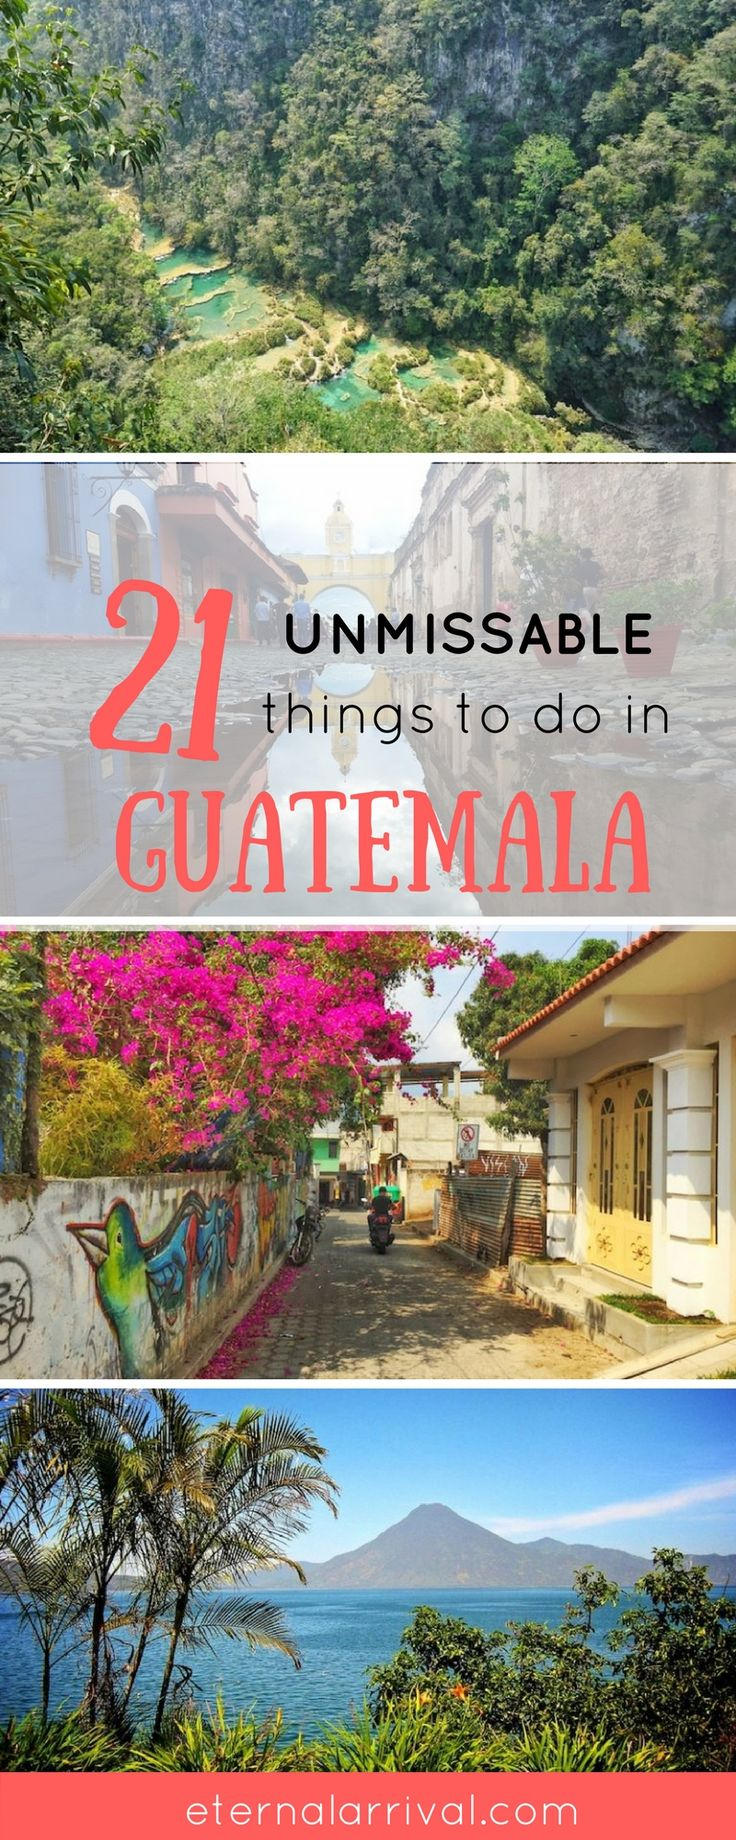 All the best adventures for your Guatemala bucket list: travel to Antigua, see Semuc Champey, see beautiful textiles, appreciate the food & culture... here are 21 ideas for unmissable things to do in Guatemala!